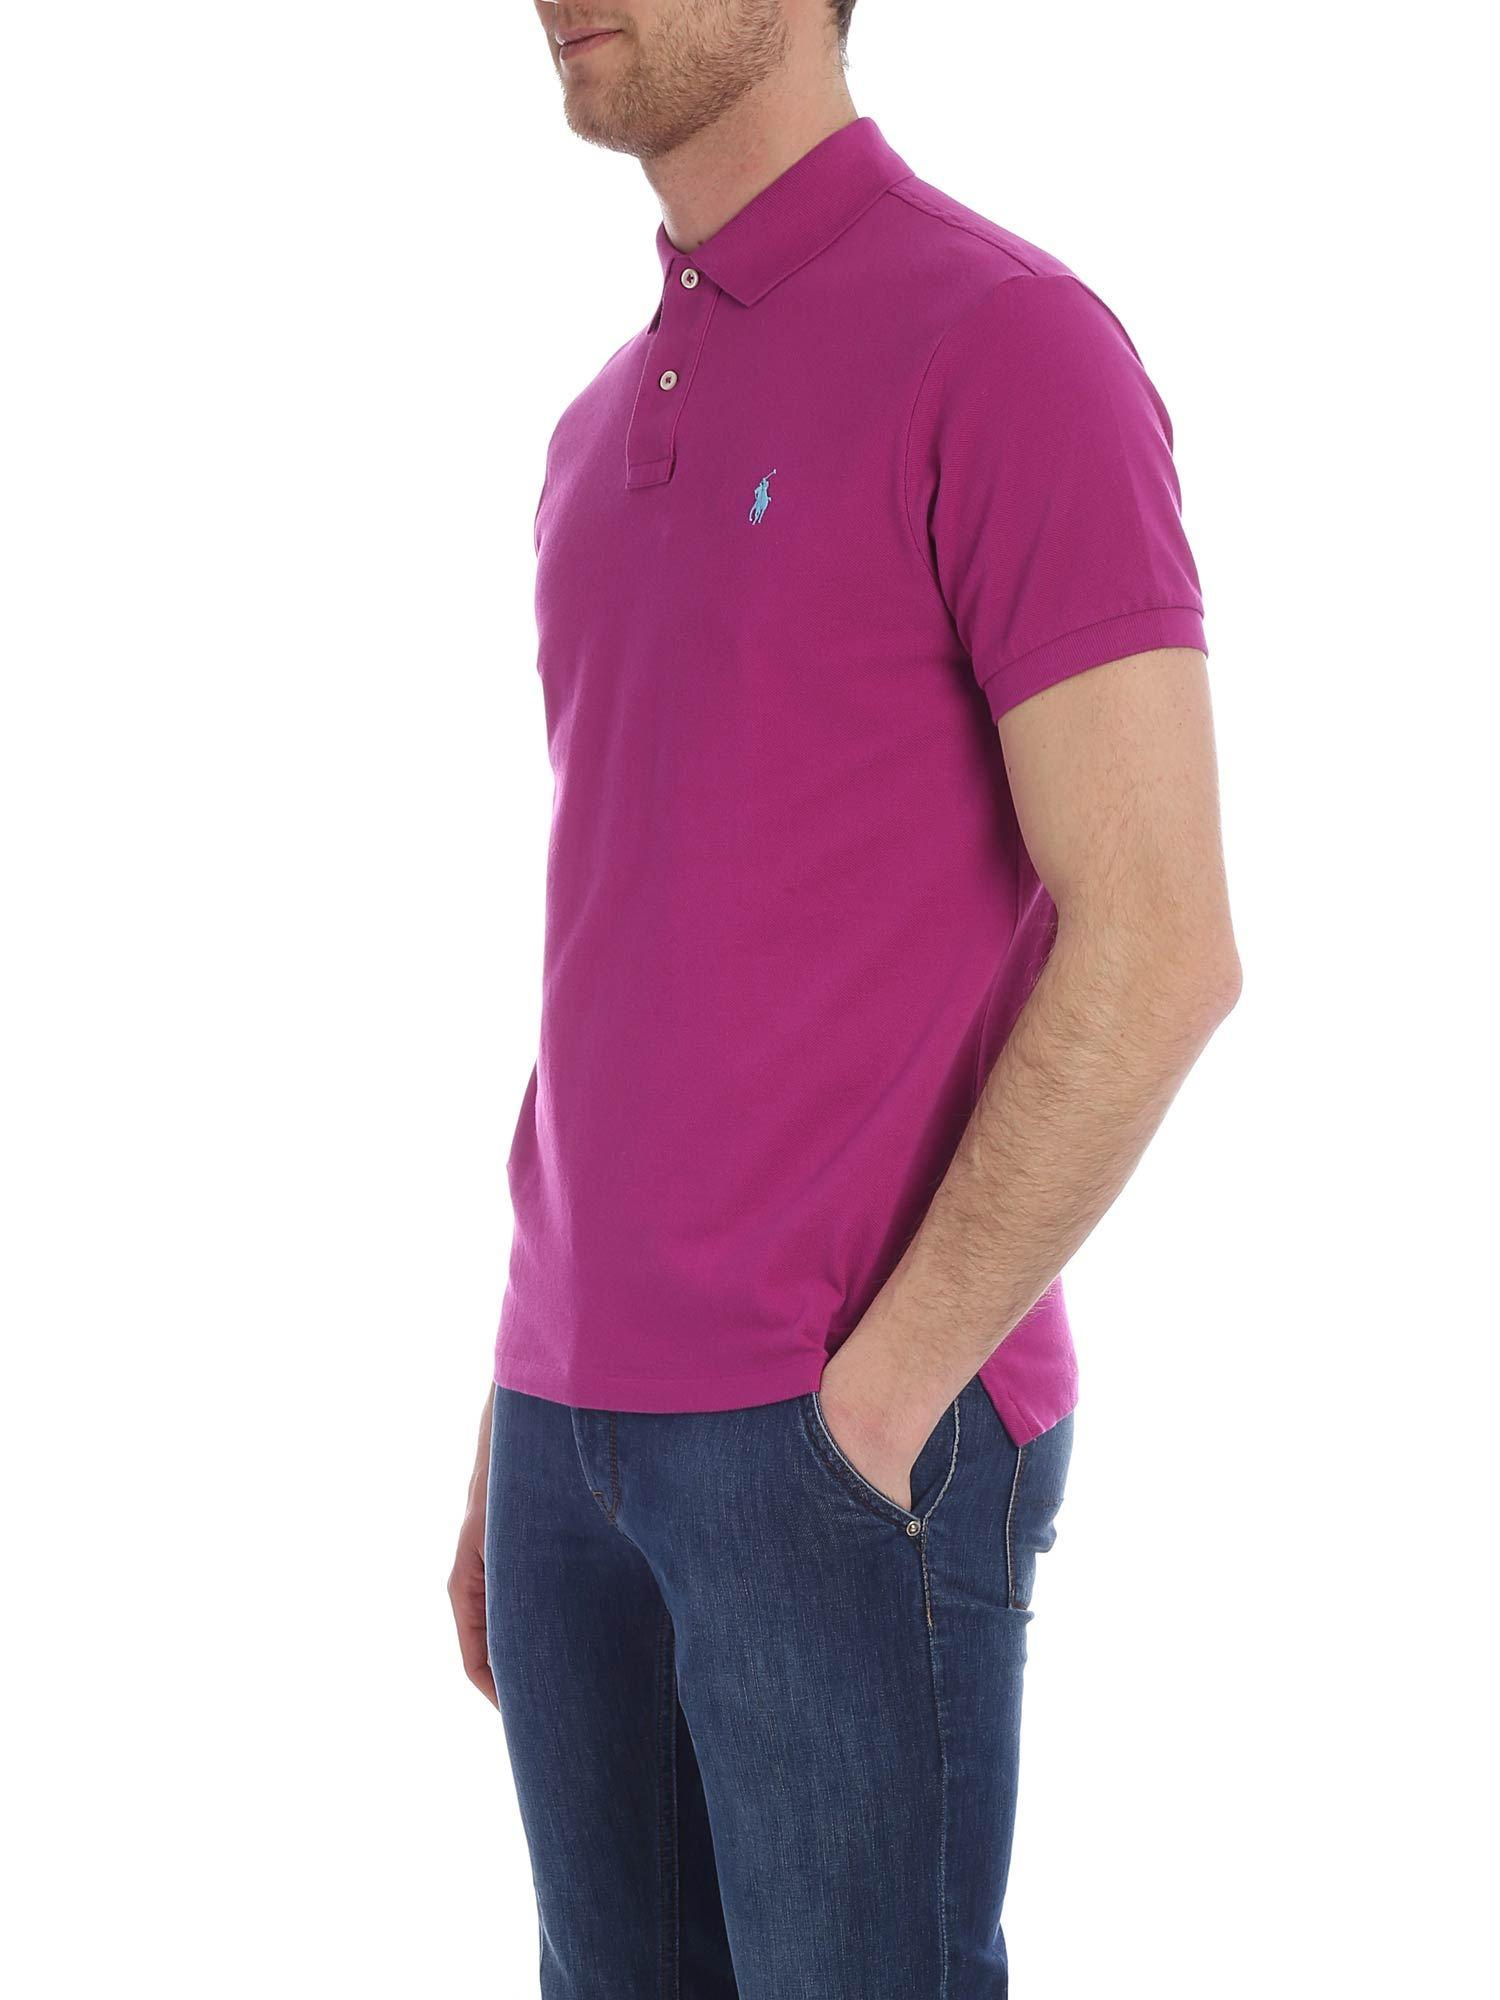 ddc67a0c Lyst - Polo Ralph Lauren Red Slim Fit Polo Shirt in Red for Men